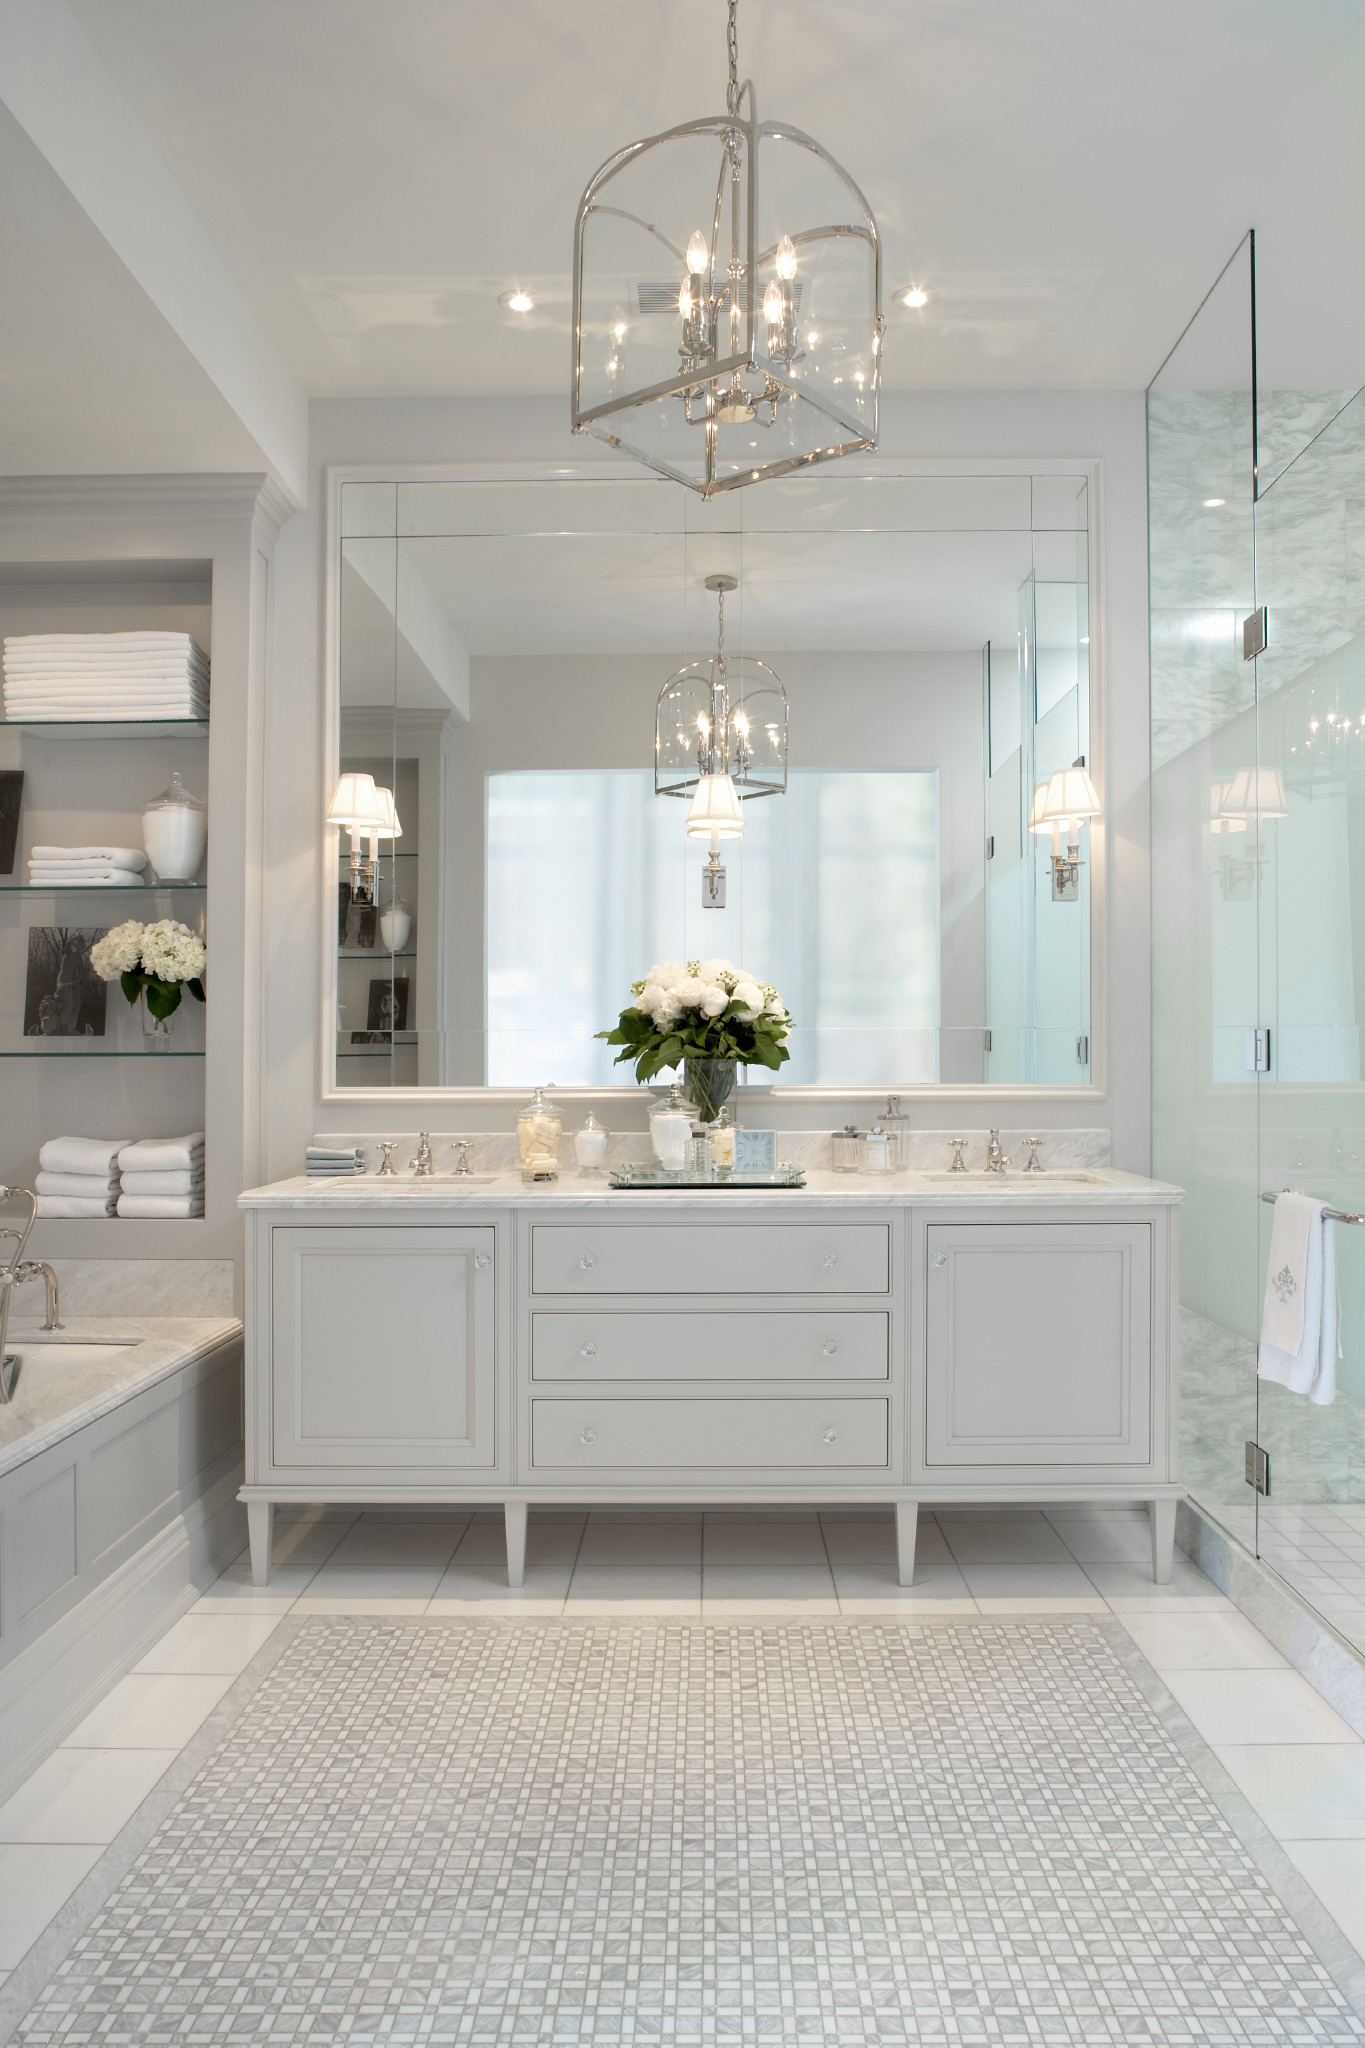 DownsviewBathroom_preview